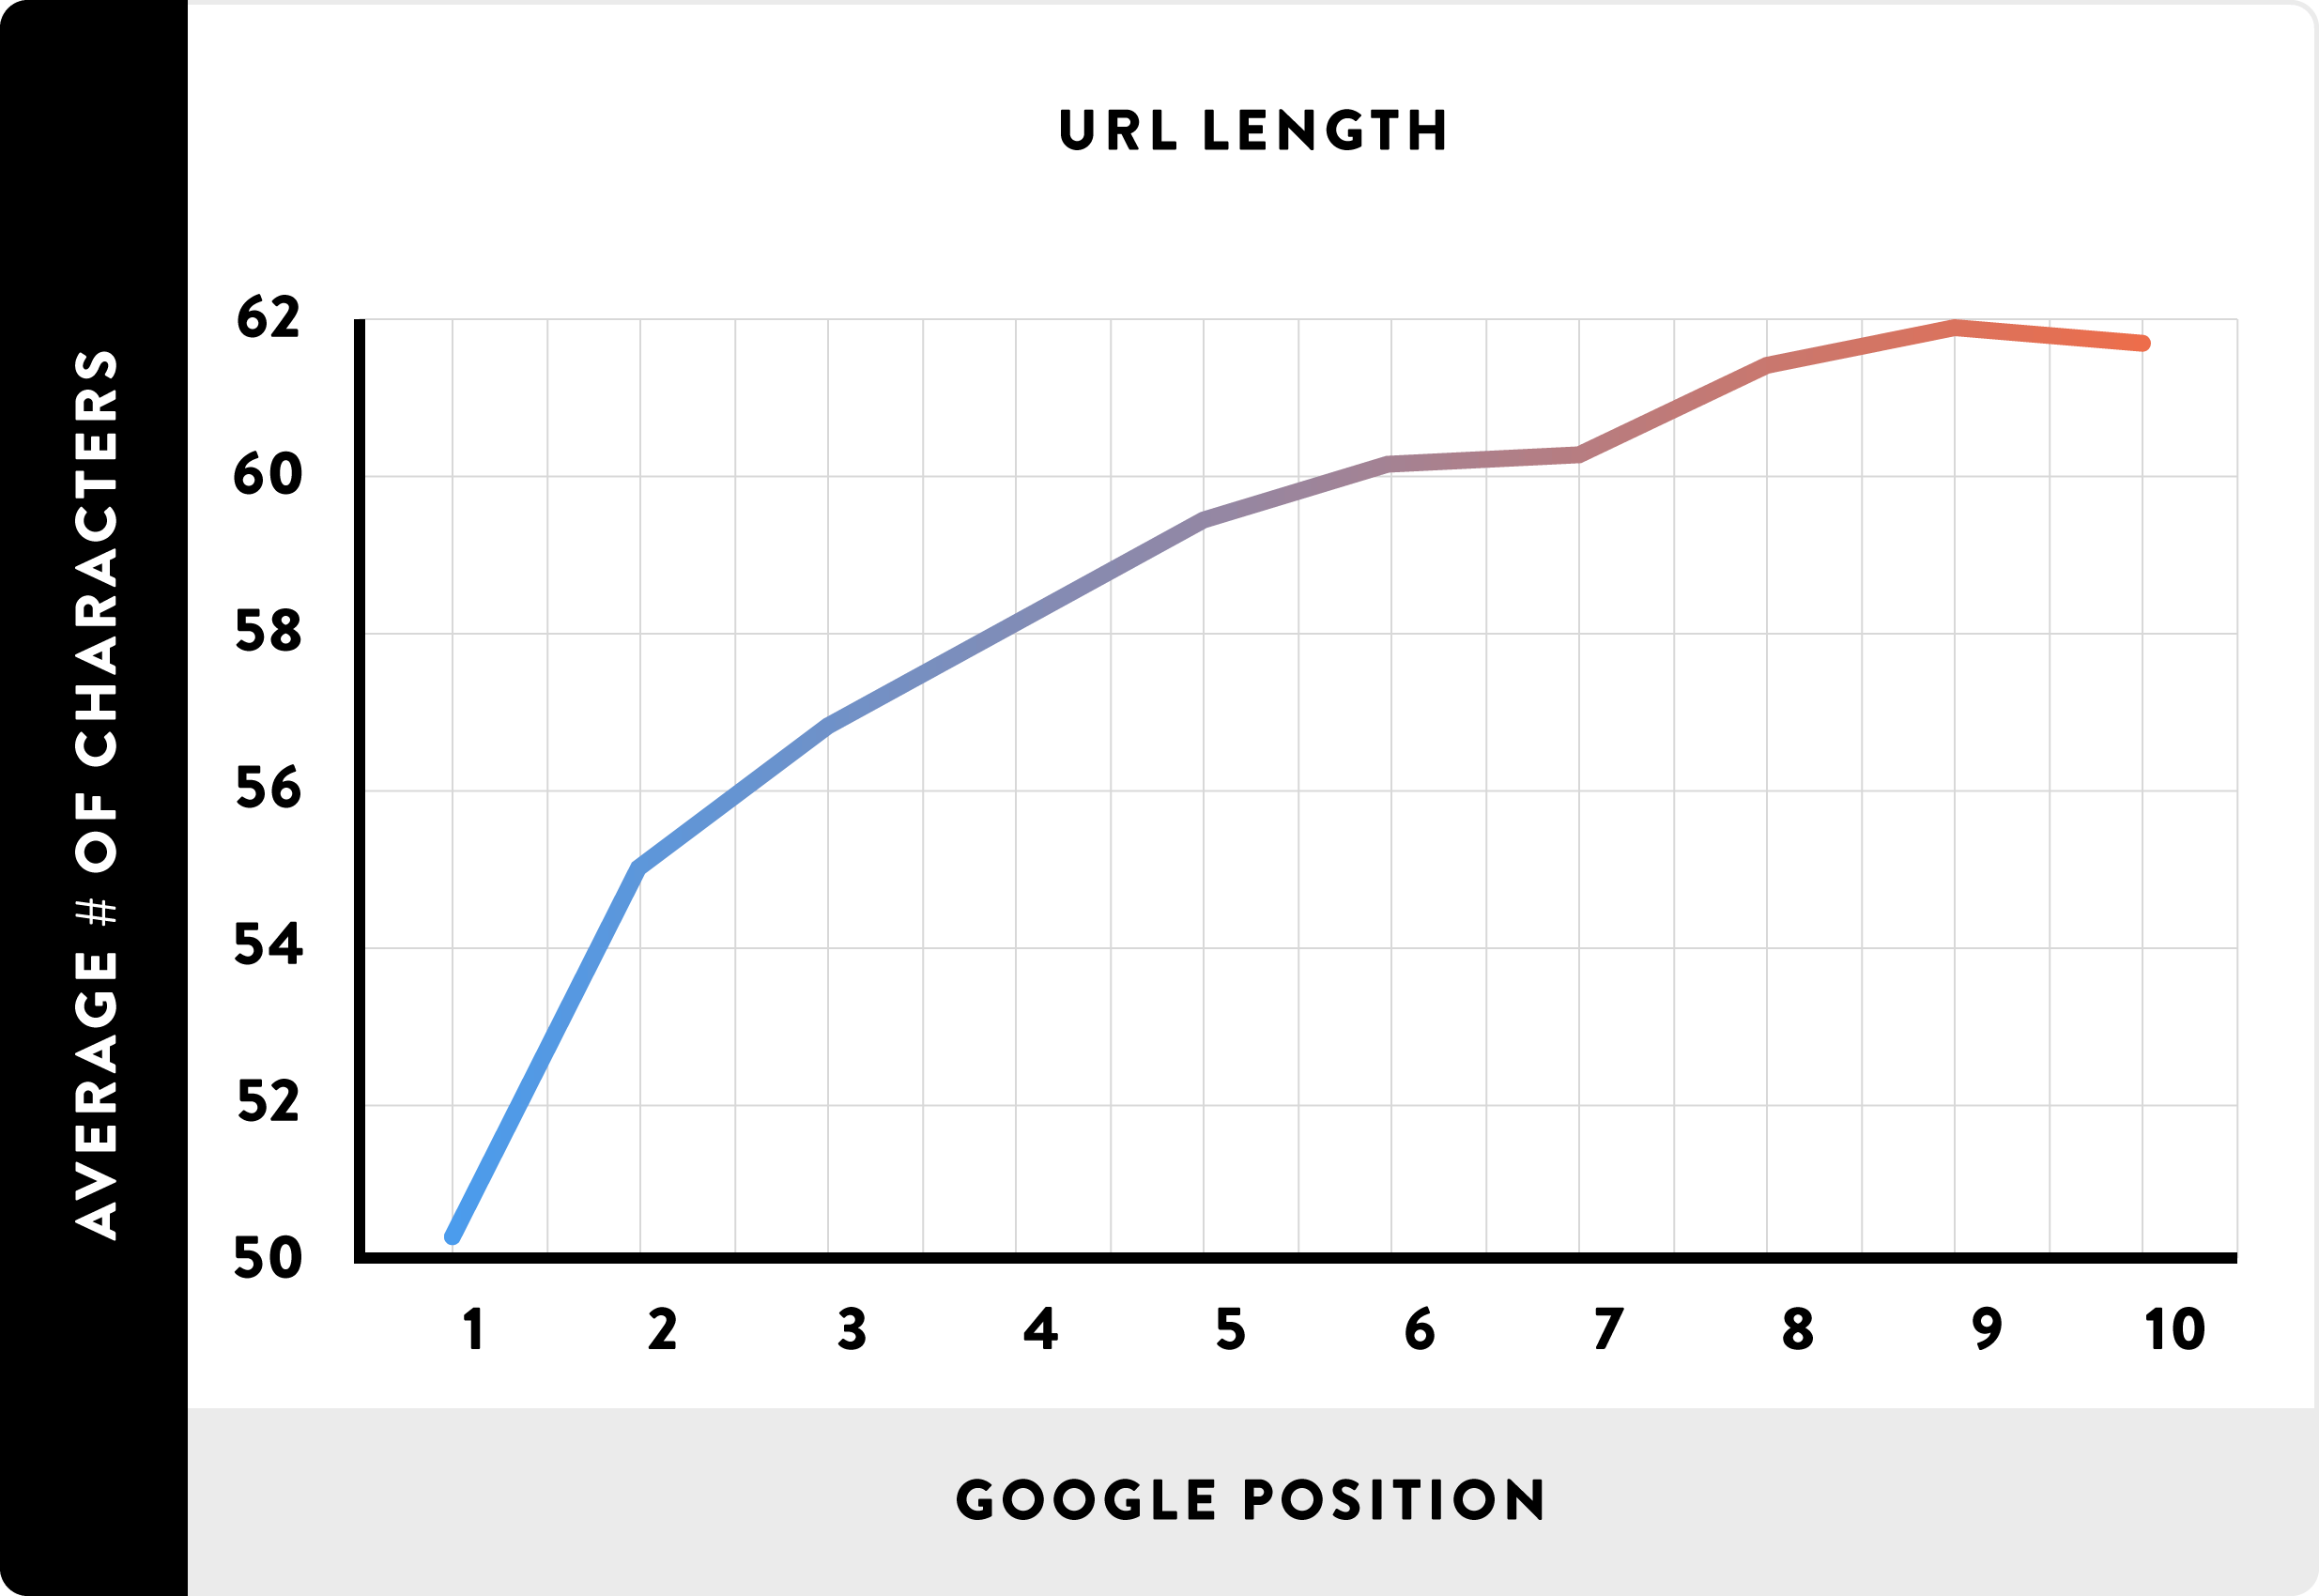 url-length and ranking